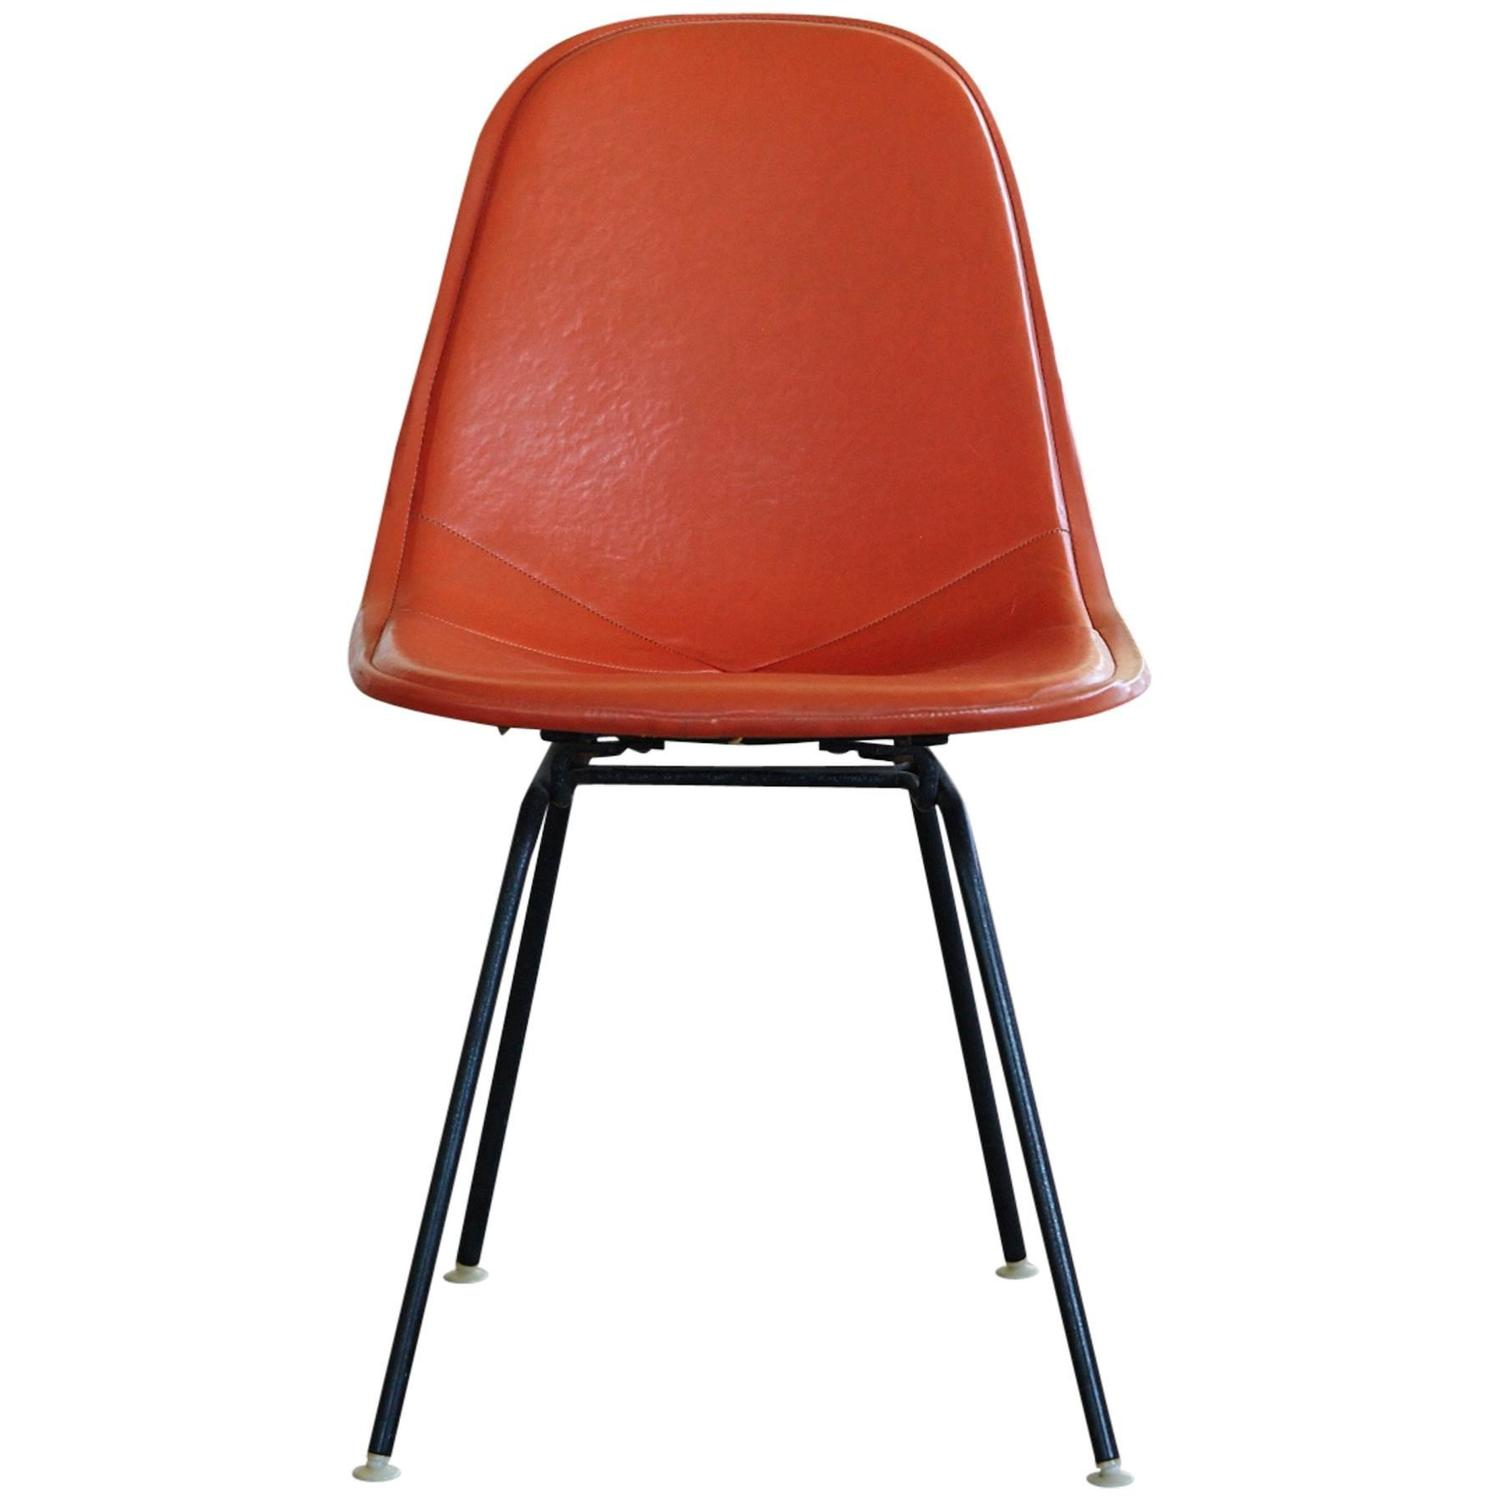 Original Eames DKX 1 Side Chair In Orange Leather For Herman Miller, 1960s  For Sale At 1stdibs